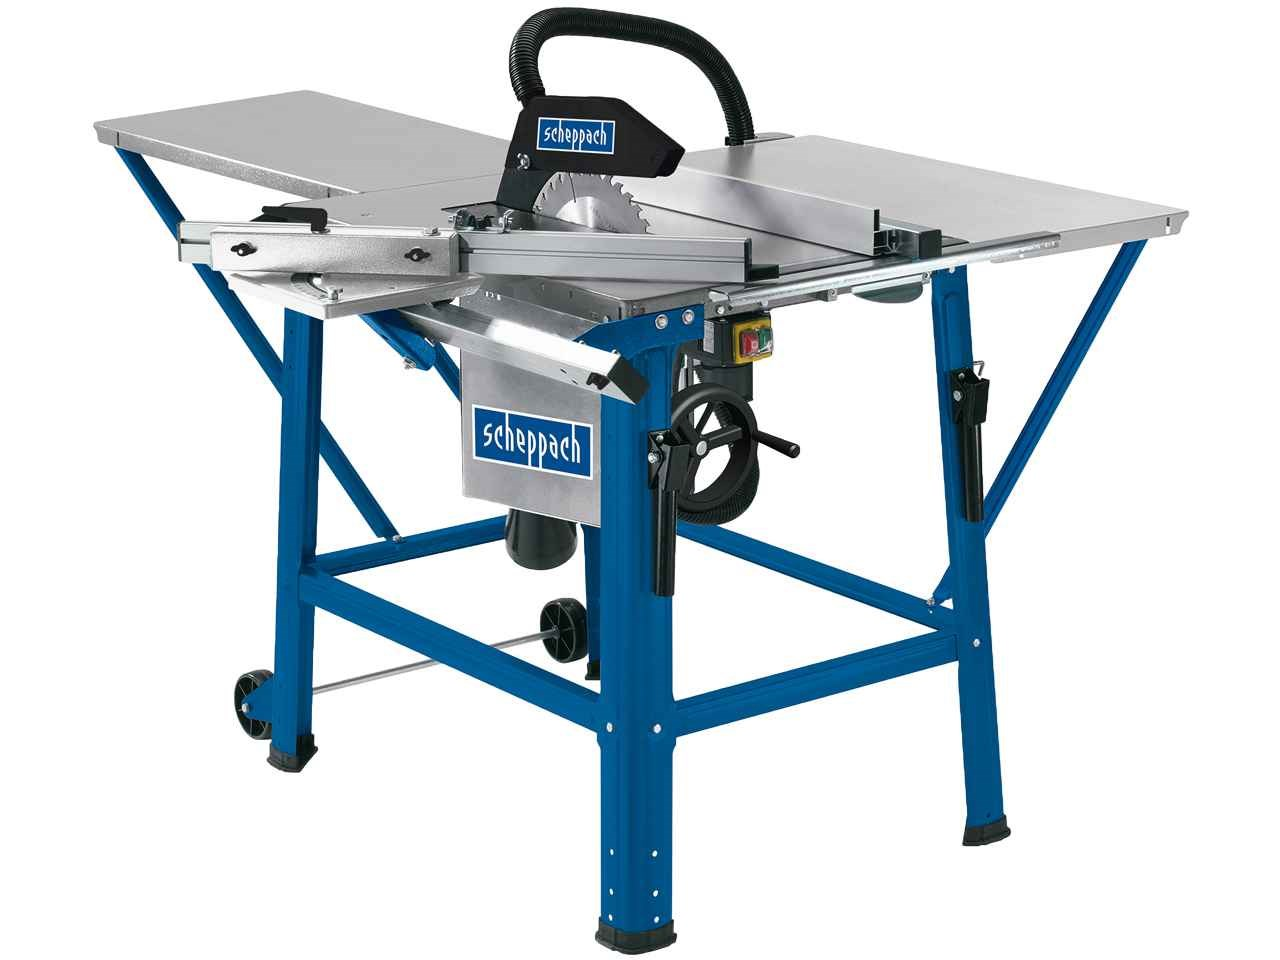 Scheppach Ts310 12in Table Saw Sliding Table Carriage